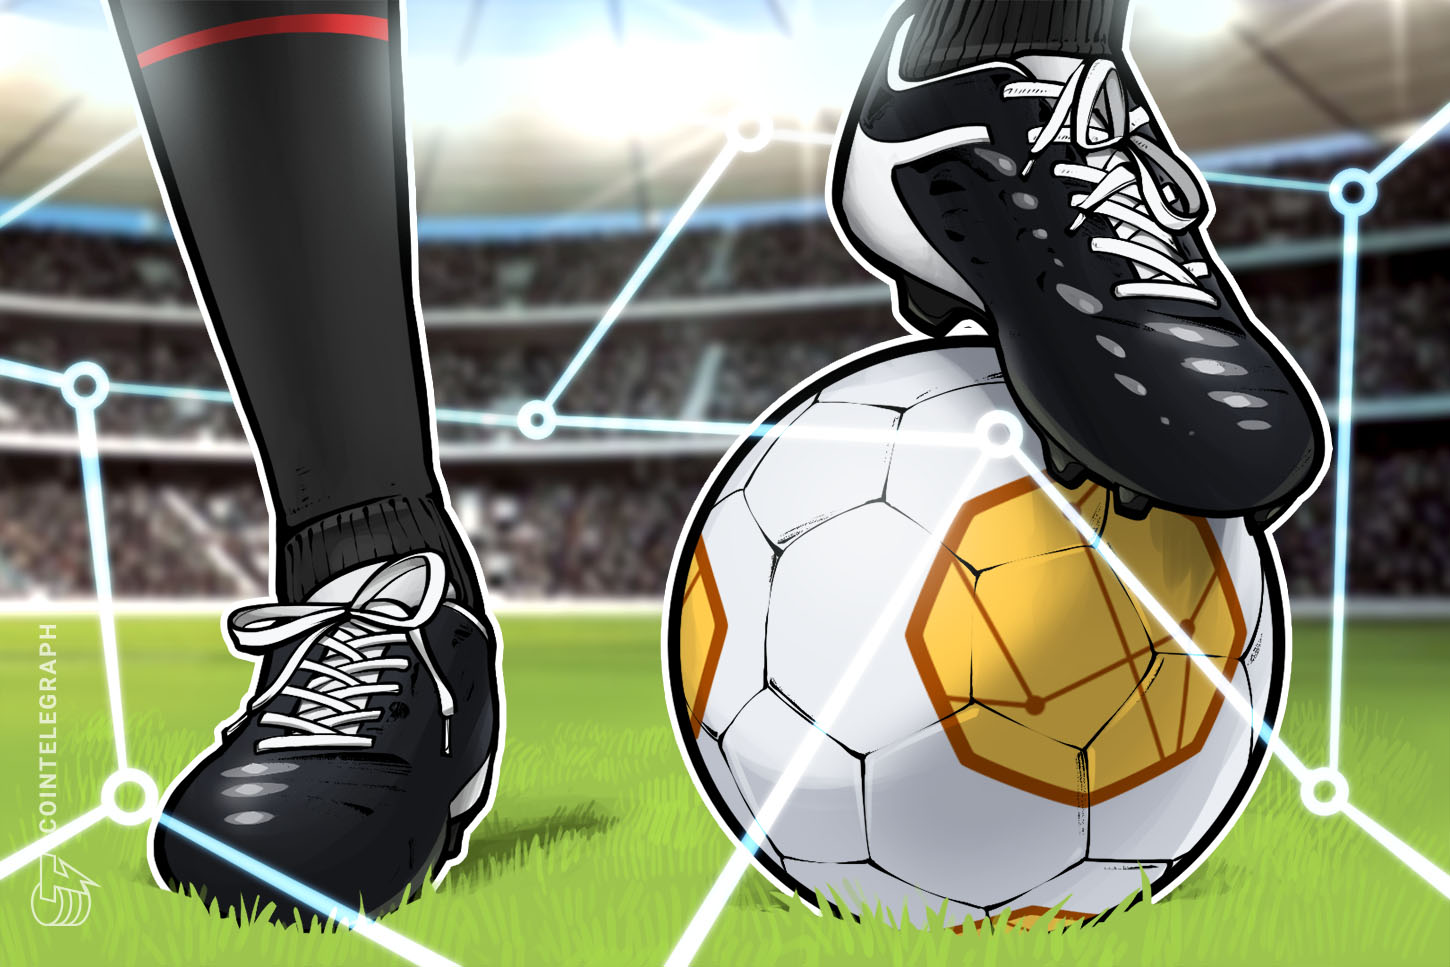 Argentinian league rebrands to Torneo socios.com with new partnership